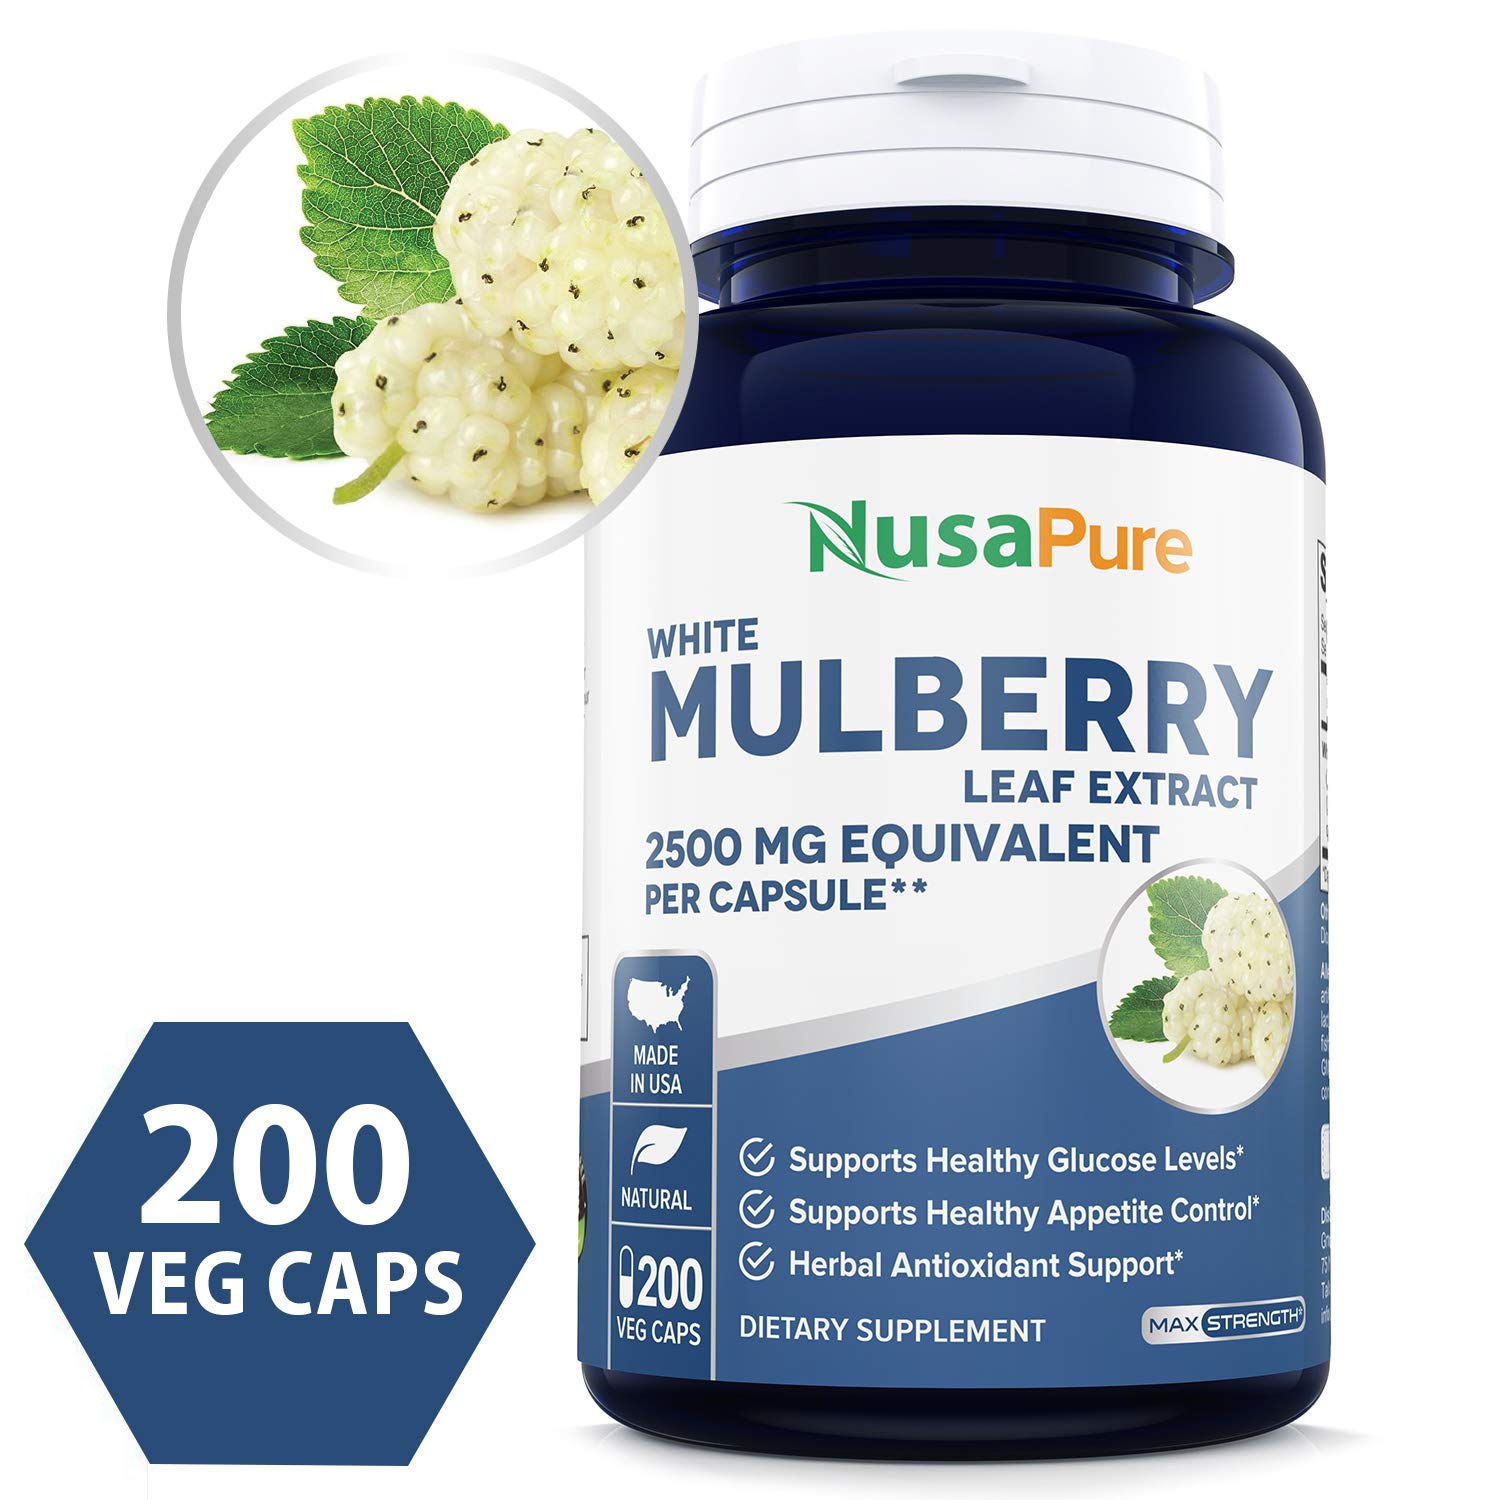 White Mulberry Leaf Extract 2500mg 200 Veggie Caps (Vegetarian, Non-GMO & Gluten Free) Natural High & Low Blood Sugar Control, Weight Loss Support by NusaPure (Image #1)